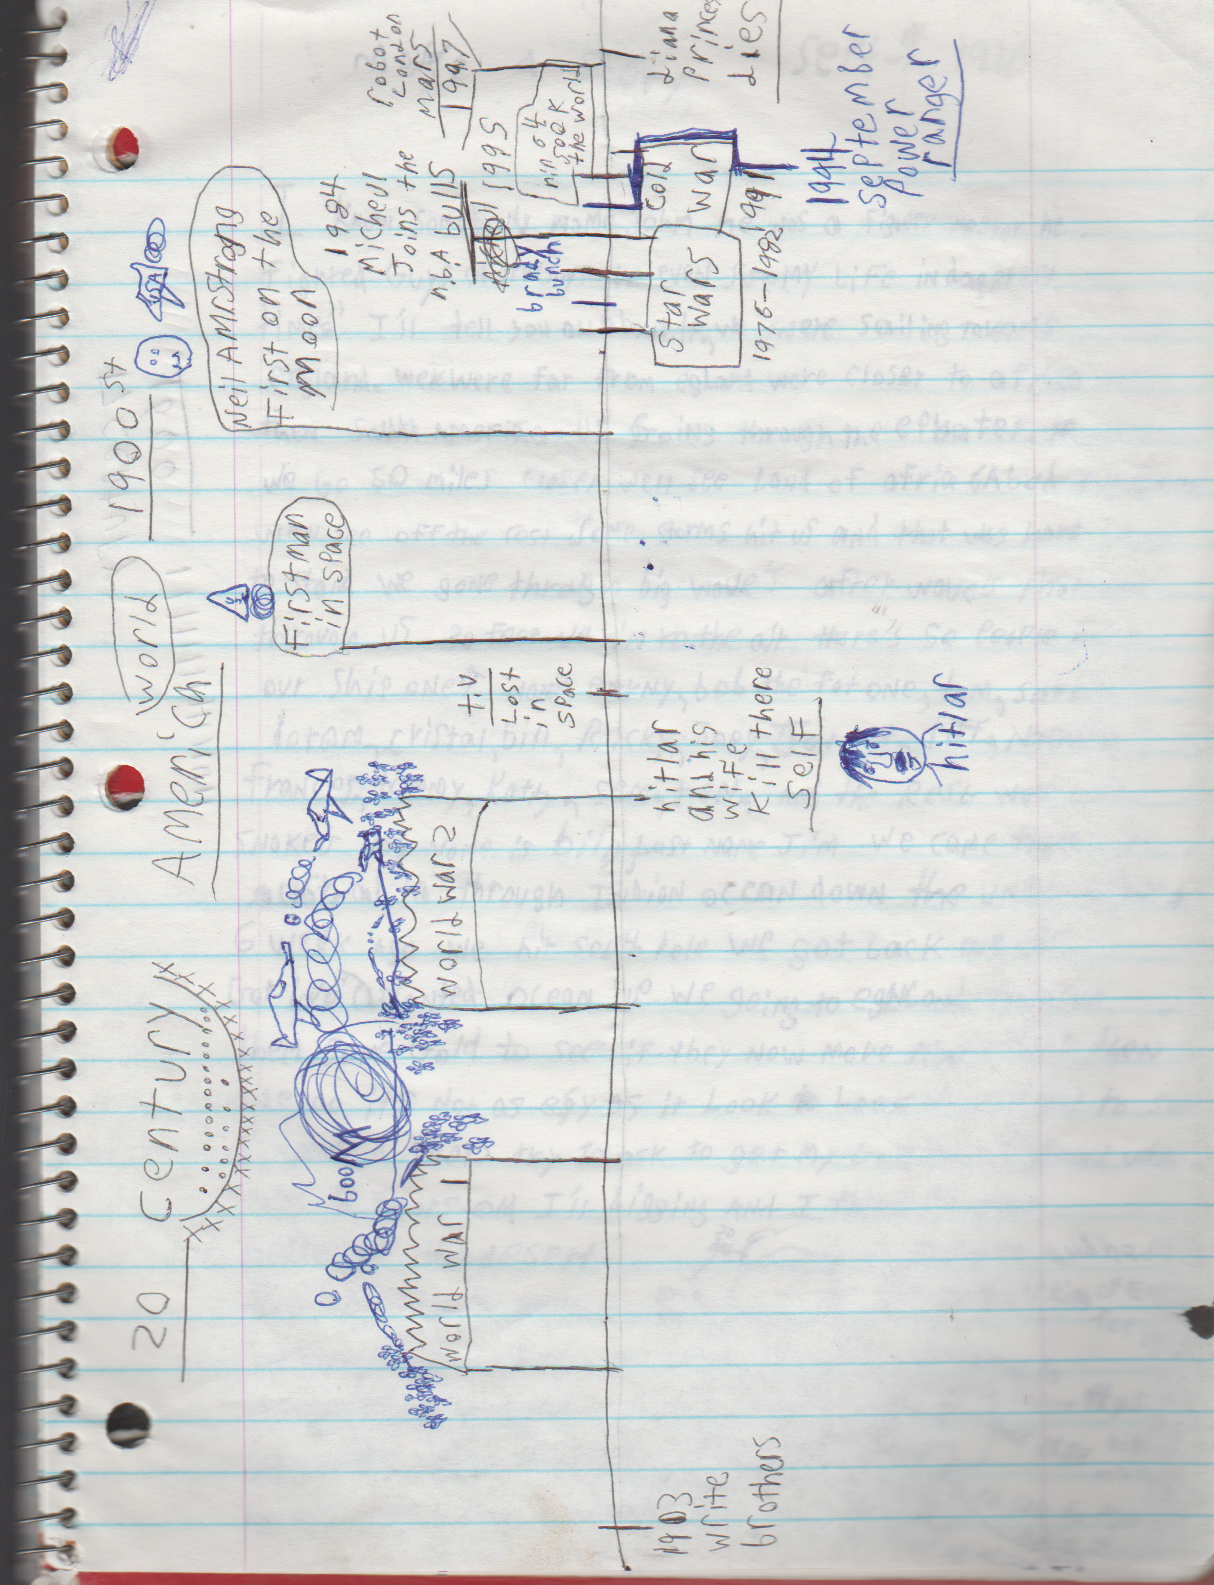 1996-08-18 - Saturday - 11 yr old Joey Arnold's School Book, dates through to 1998 apx, mostly 96, Writings, Drawings, Etc-090.png